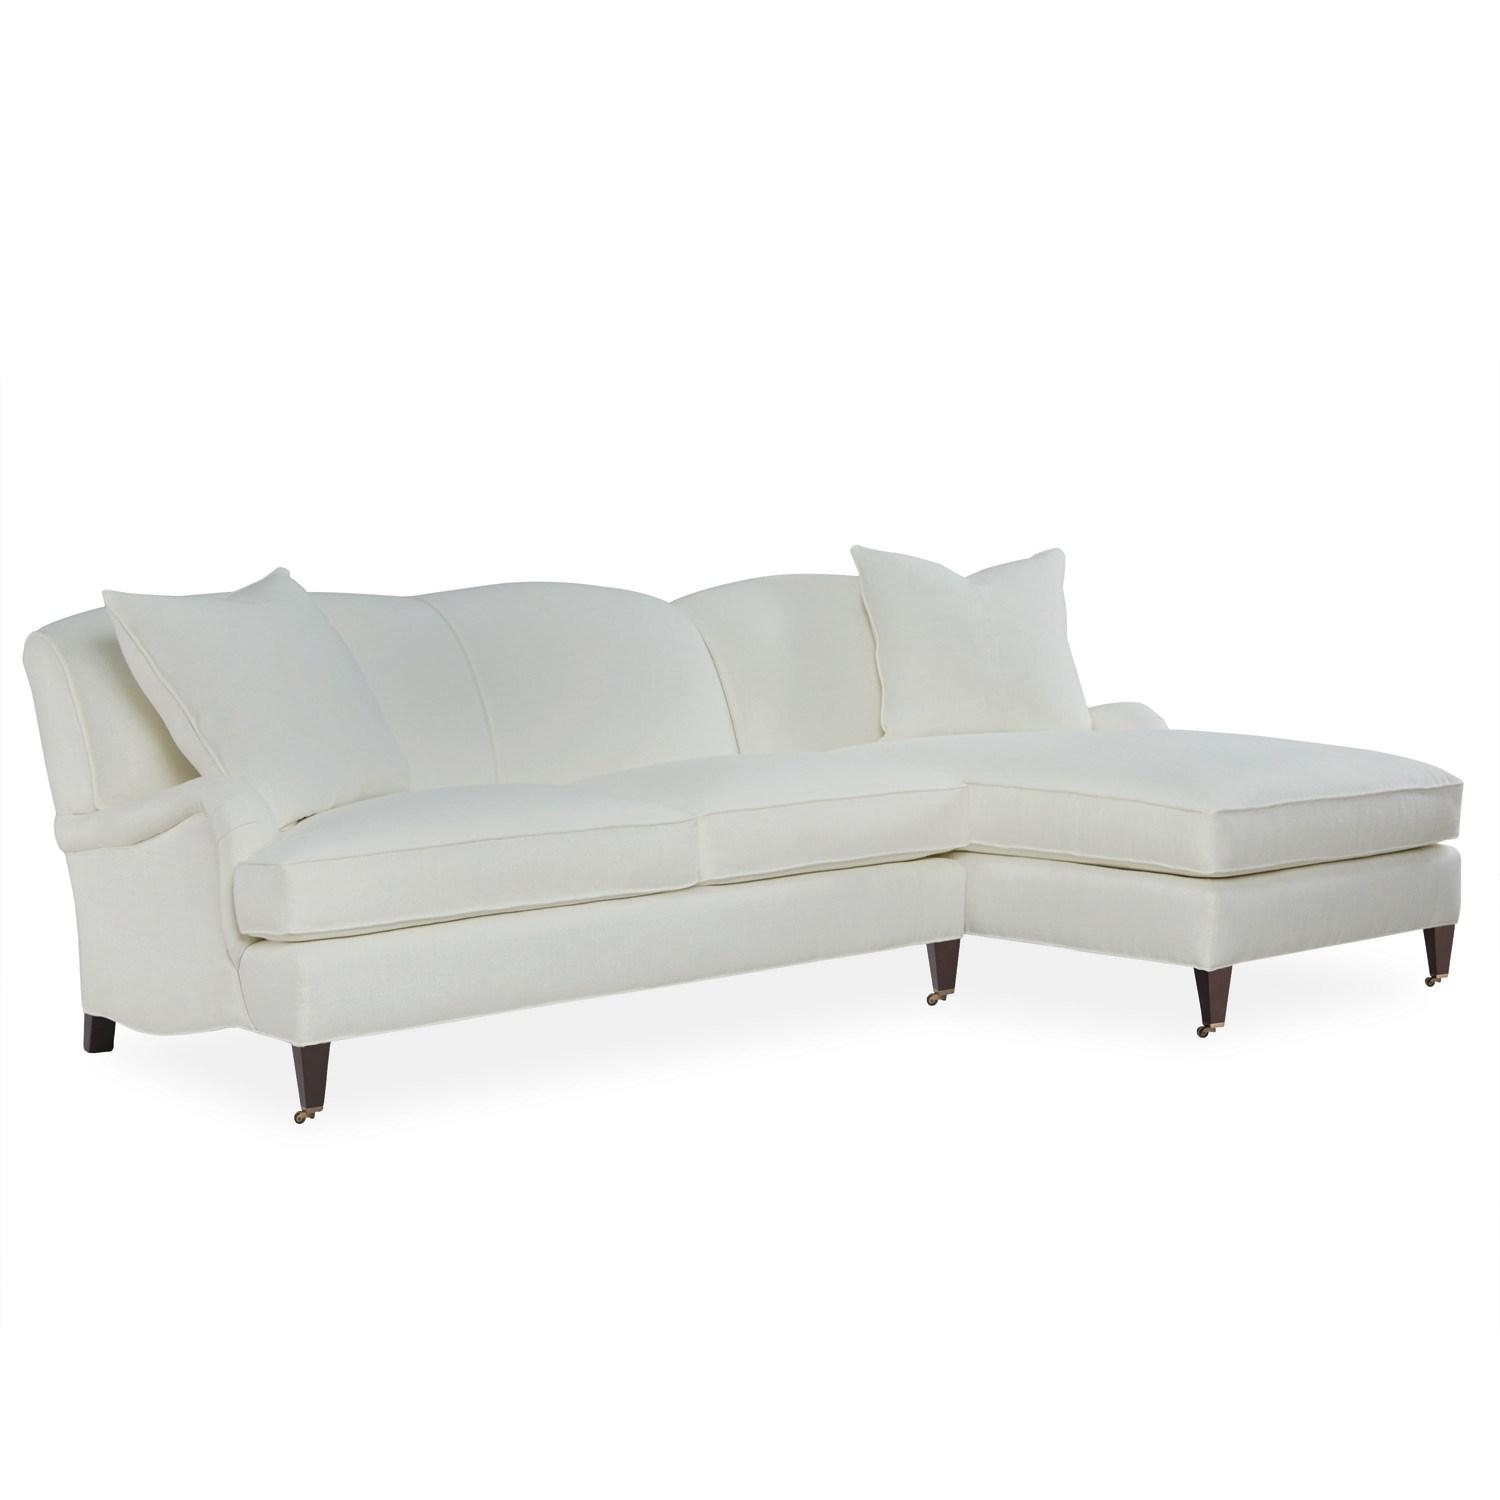 Sofas : Magnificent Classic English Sofa English Roll Arm Leather In Classic English Sofas (Image 16 of 21)